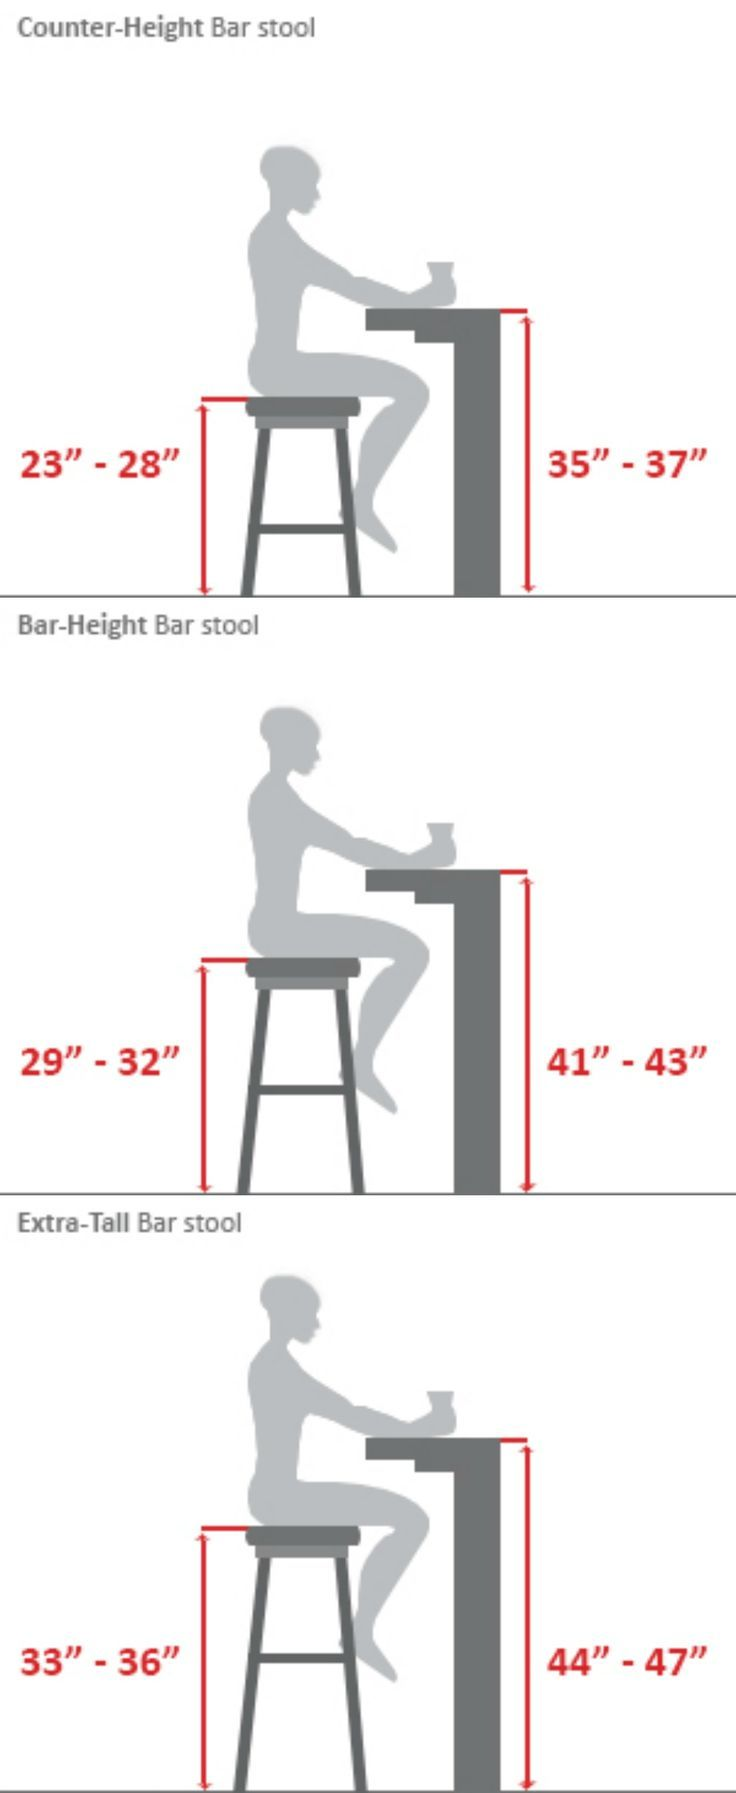 Uncategorized Bar Stool Size Guide best 25 bar stool height ideas on pinterest buy stools buying guide or the builders when building desks